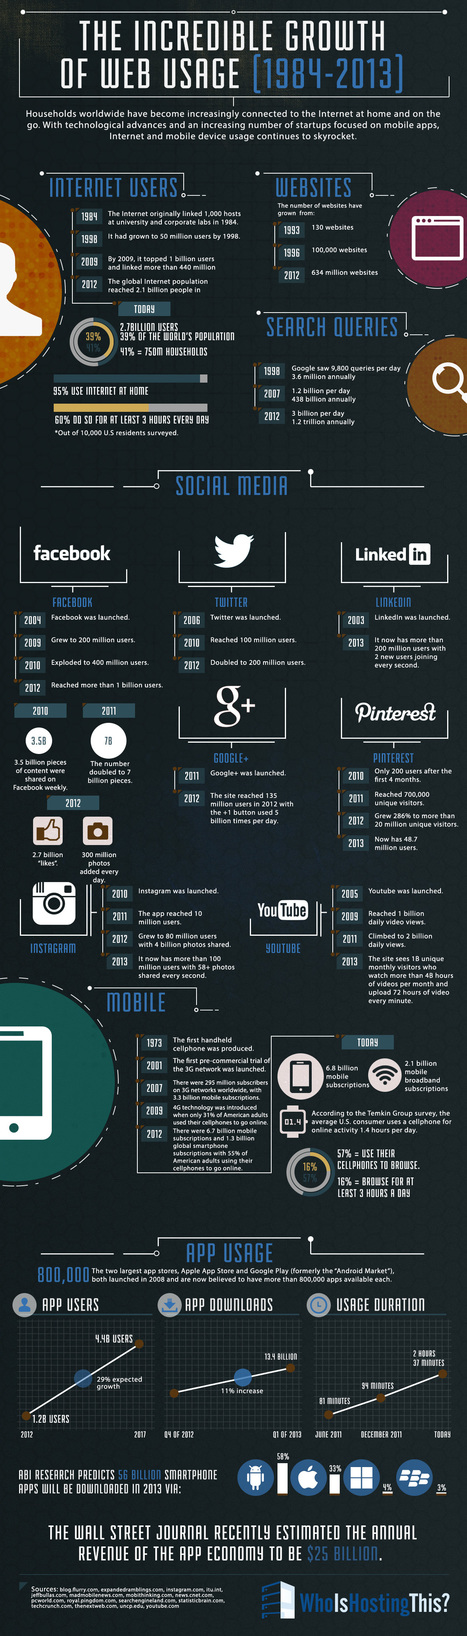 Infographic: The Incredible Growth of Web Usage [1984-2013] | Game Ponder | Scoop.it